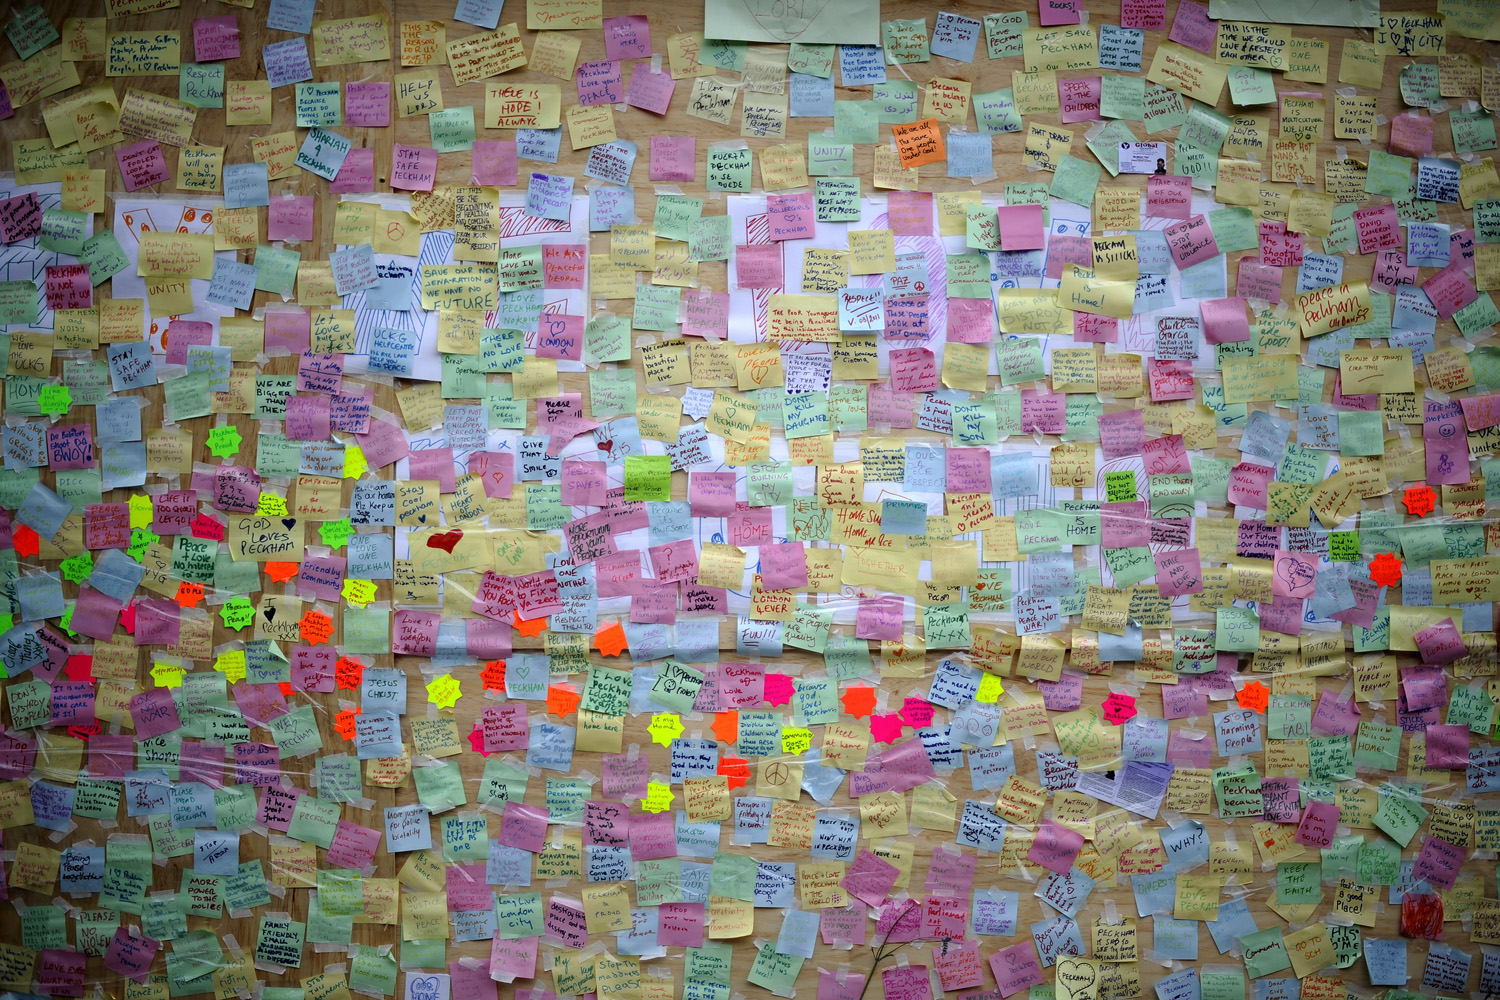 August 11, 2011. Notes are pinned up at a  Peace Wall  on a boarded-up window of a discount store in Peckham, London, following days of rioting.